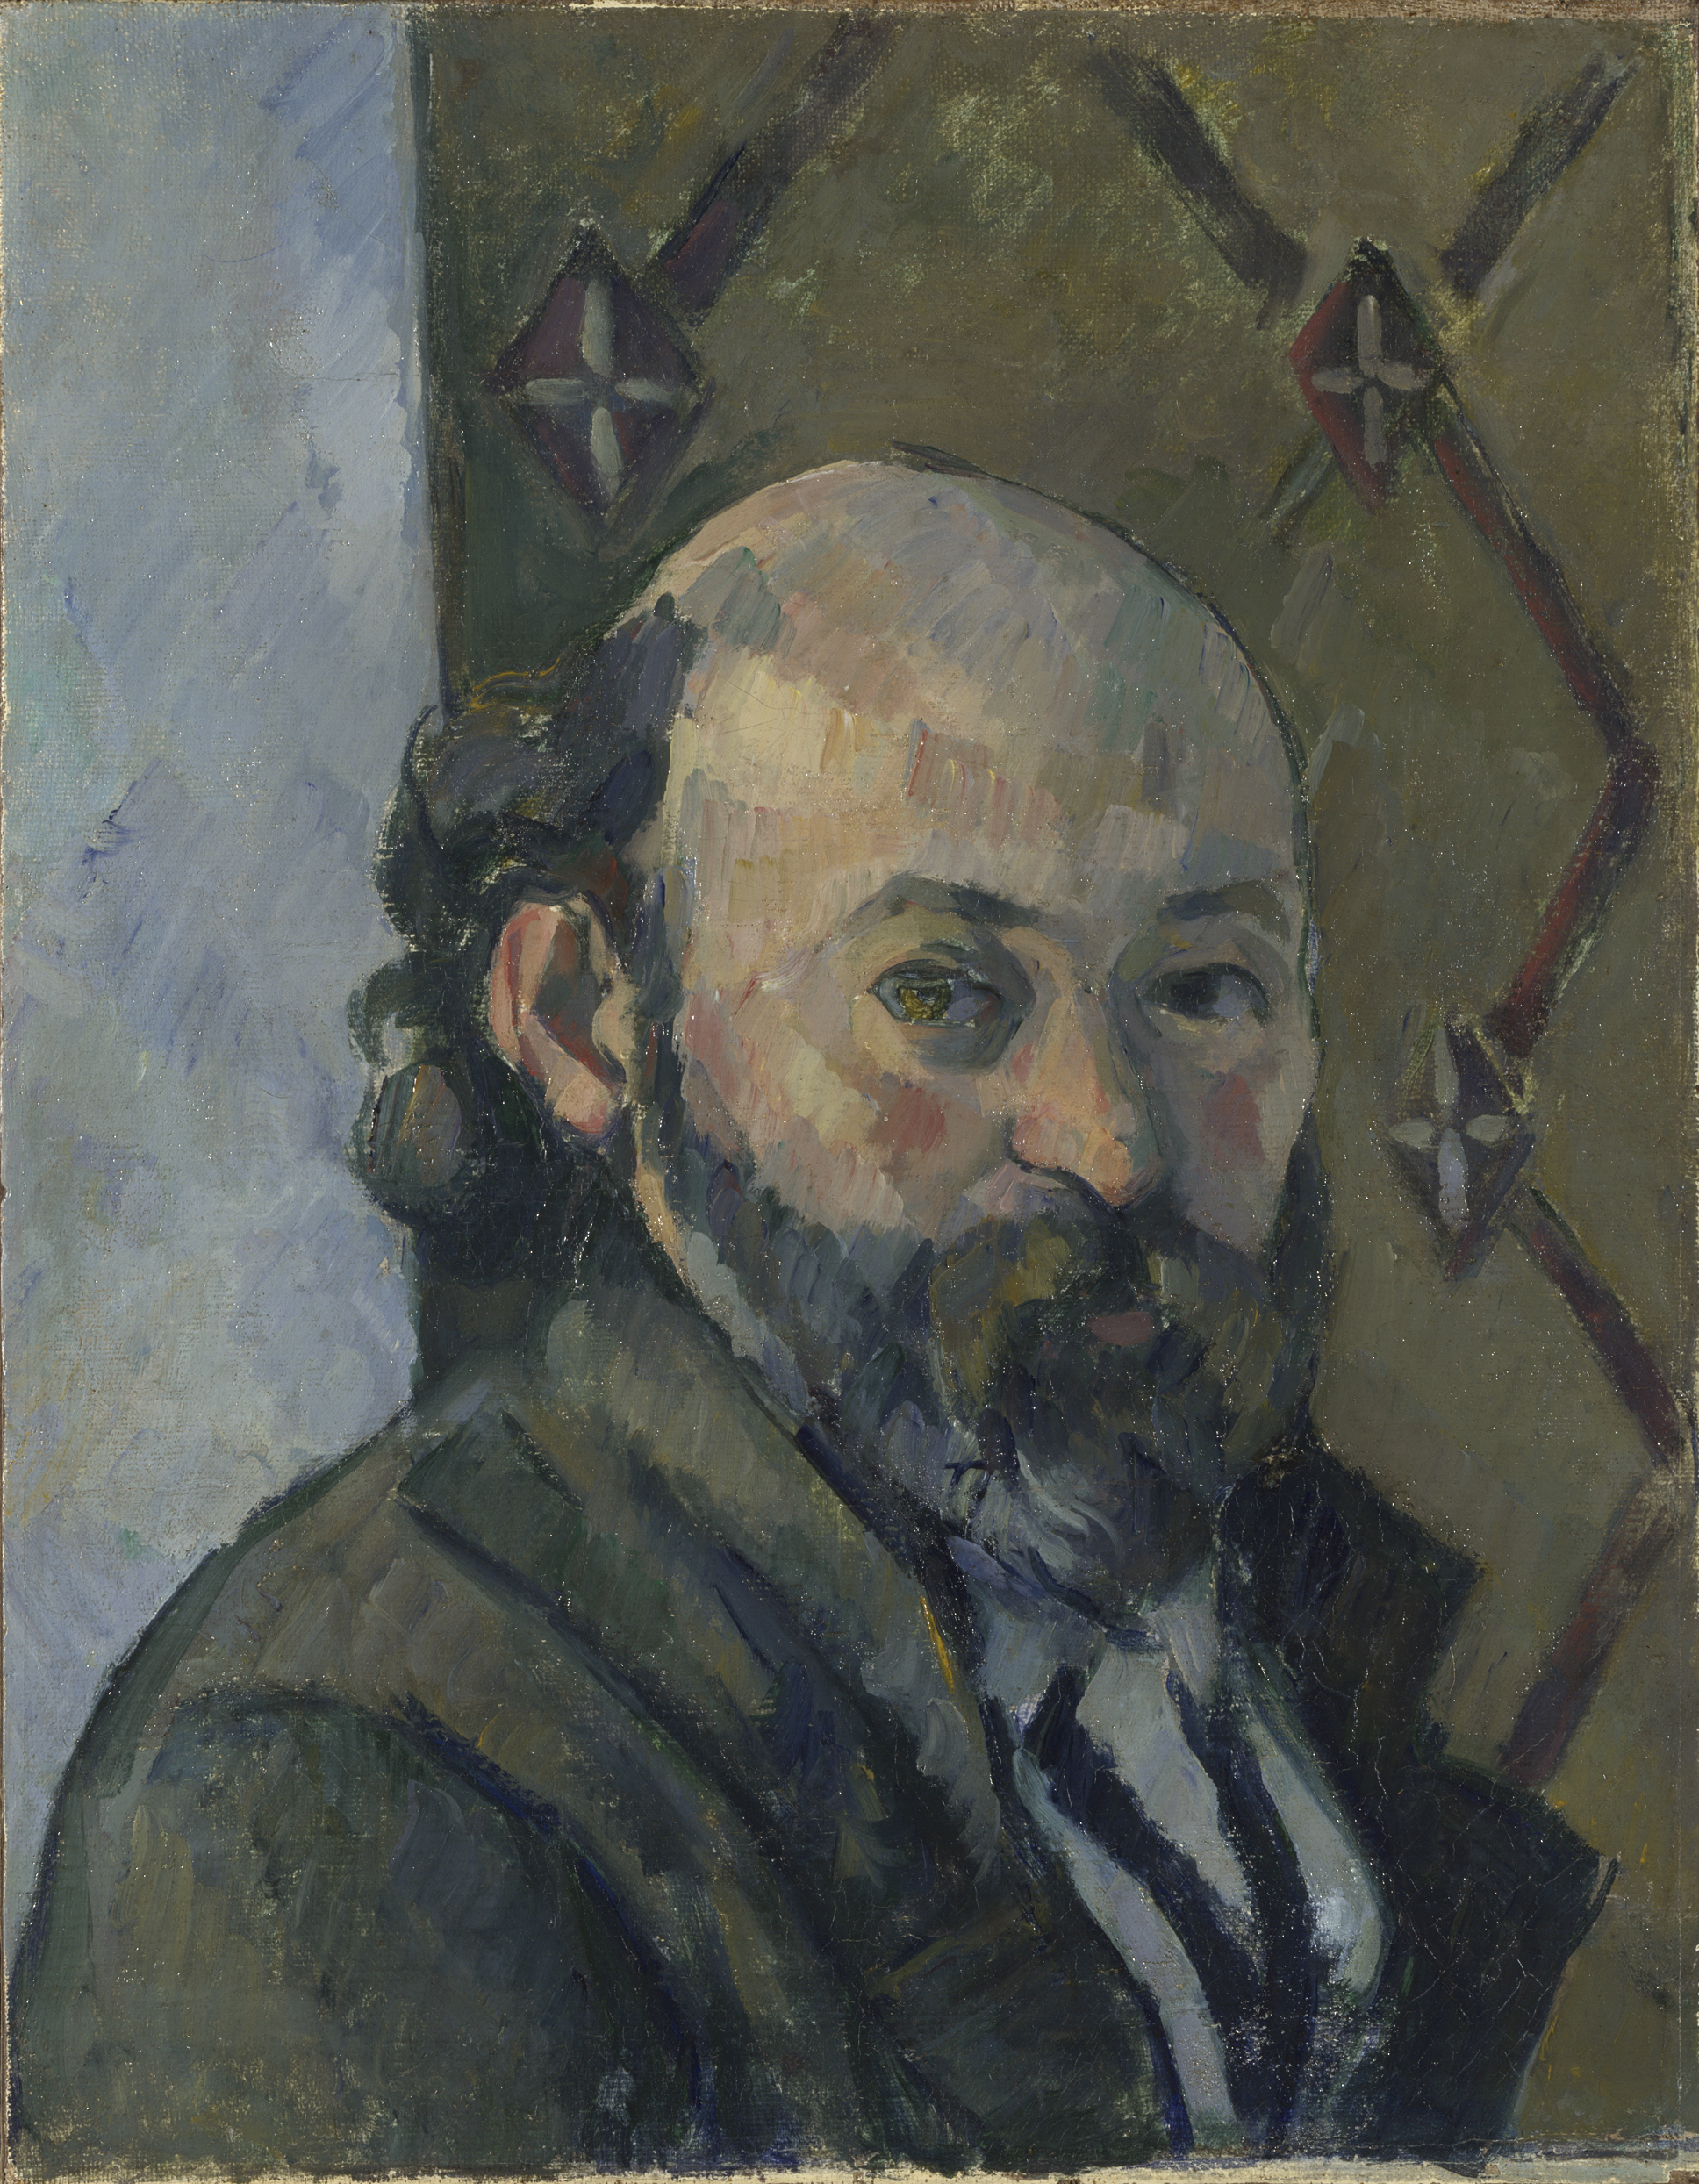 Self Portrait - Paul Cézanne, c. 1880-1.